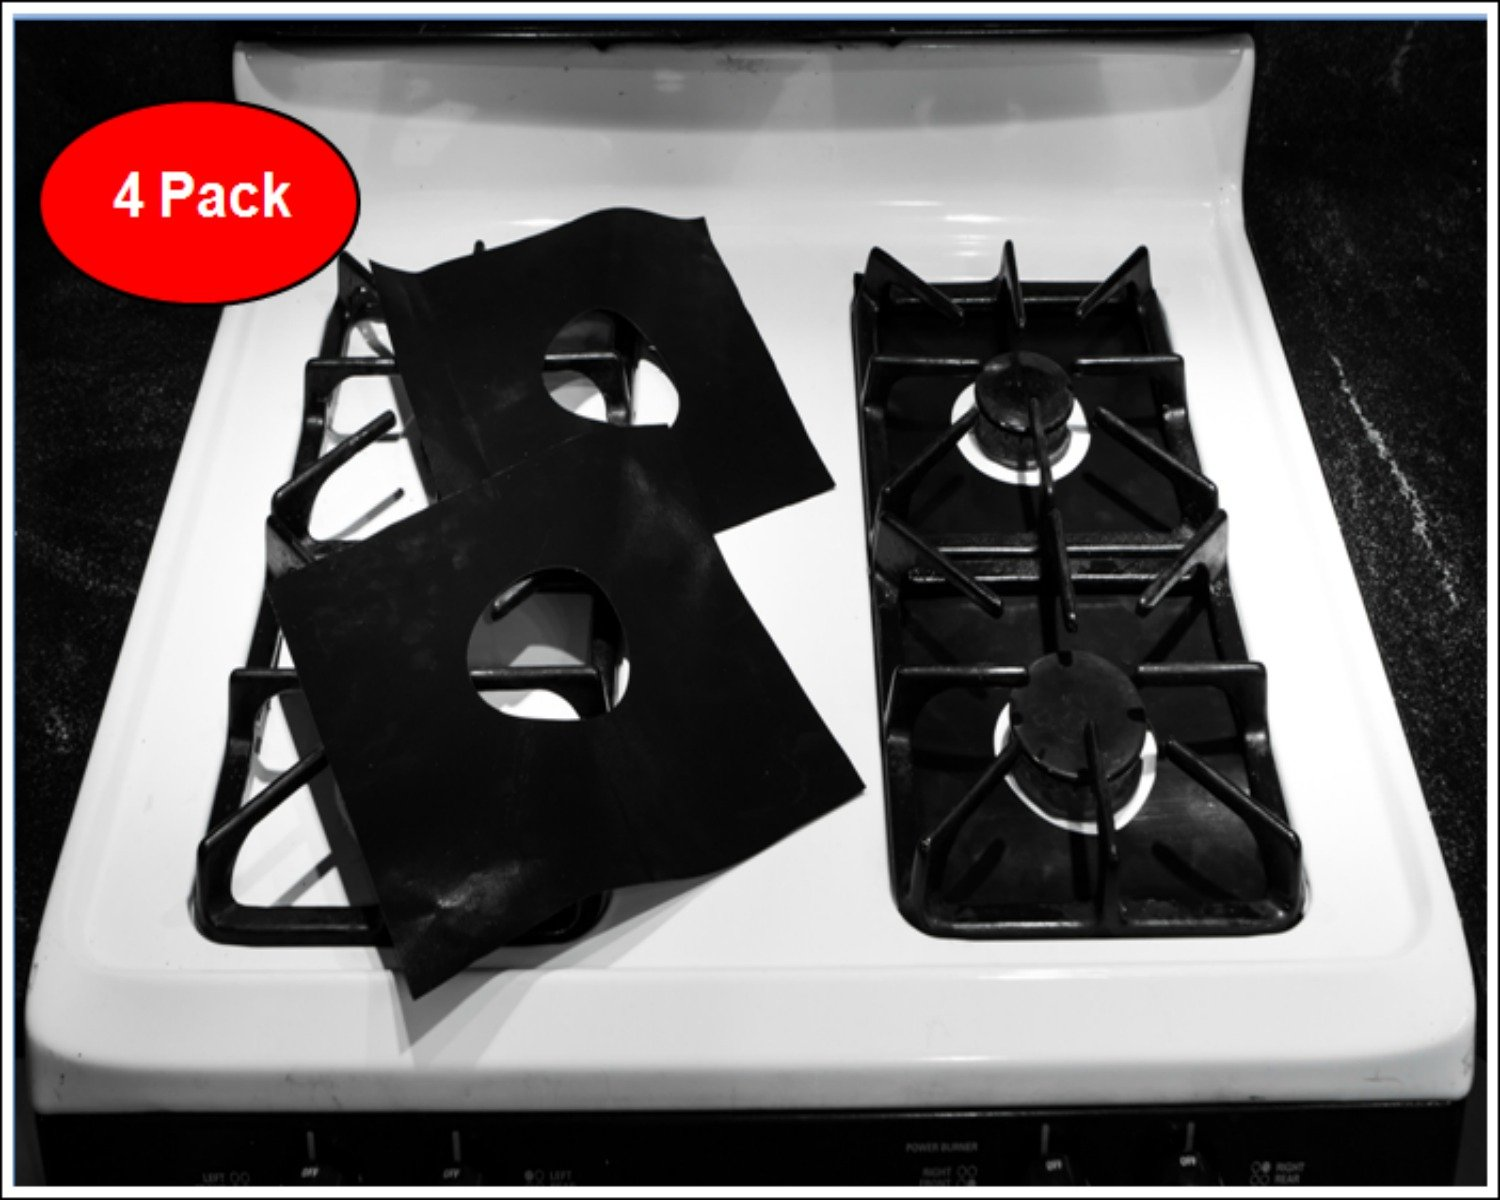 Experience a Betty Crooker Kitchen! Set of 4 PTEF Non-Stick Fiberglass Gas Range Burner Covers Keeps Your Gas Stove Top Looking Ready for a Photo Shoot!